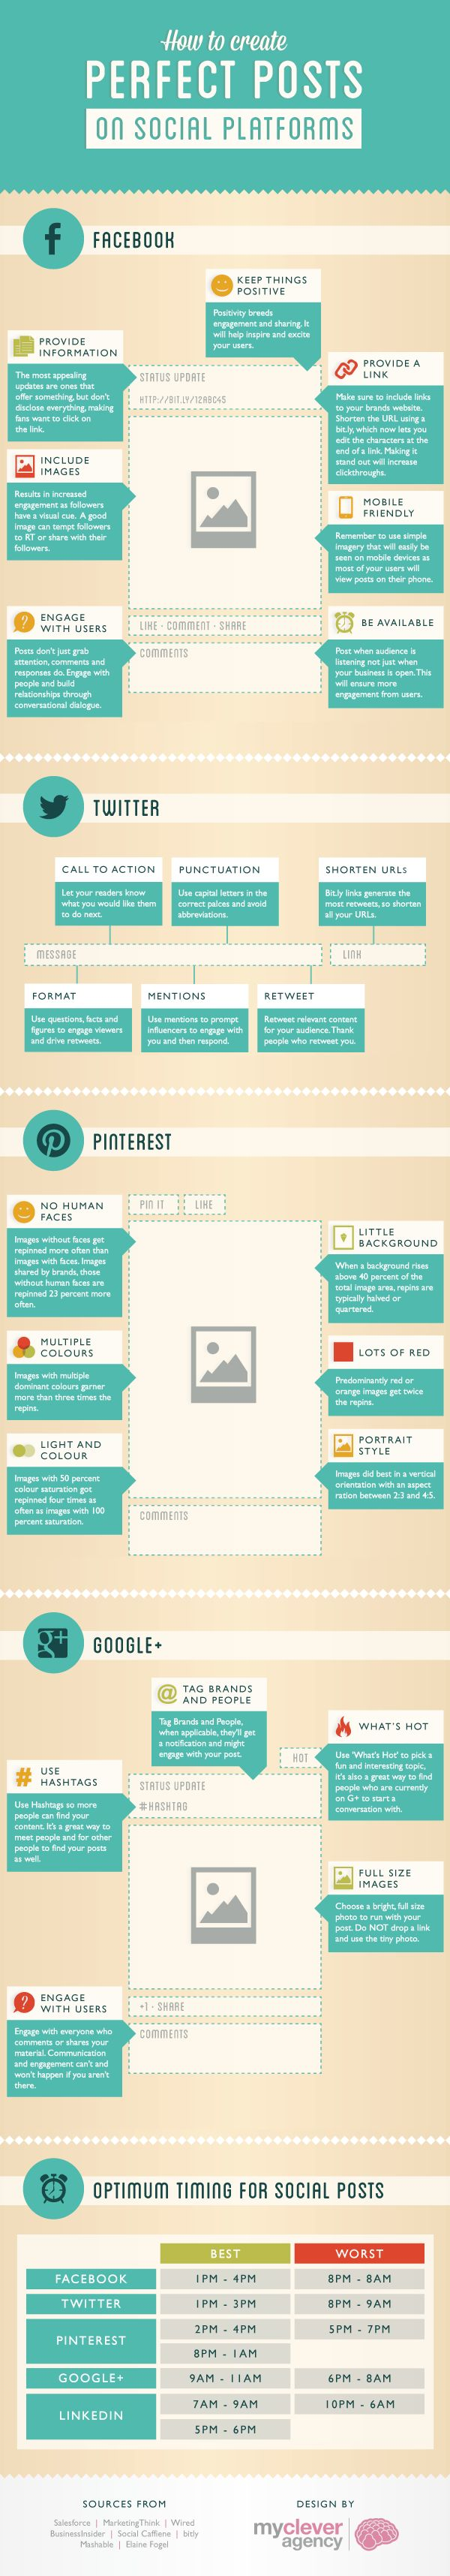 Best Times to Post Best Times to Post on FB, Twitter, Pinterest, Linkedin and Google Plus